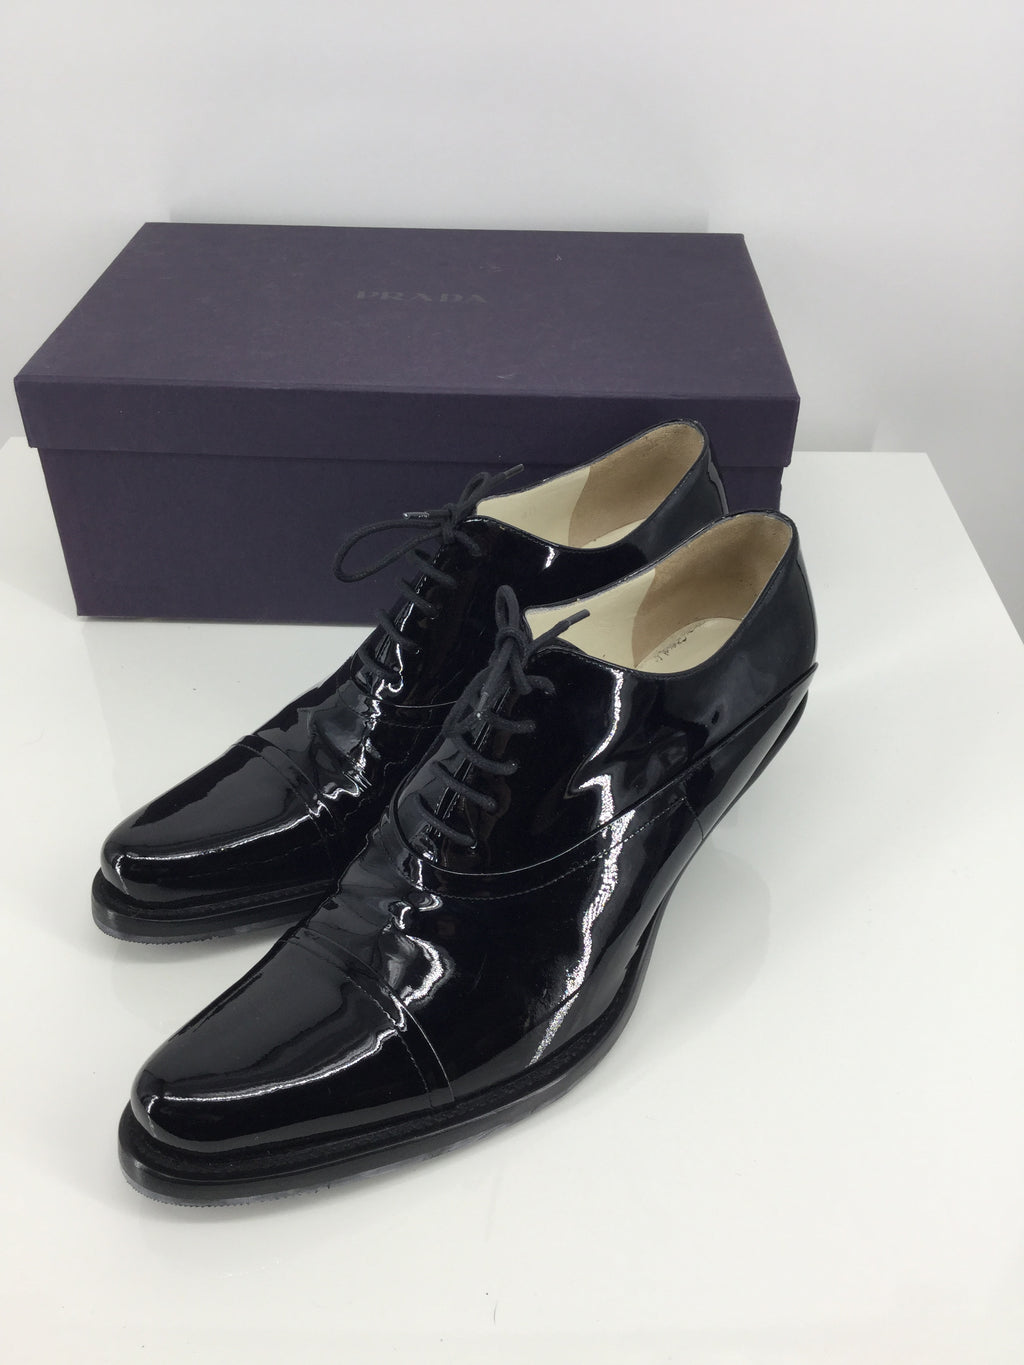 Prada Shoes Designer